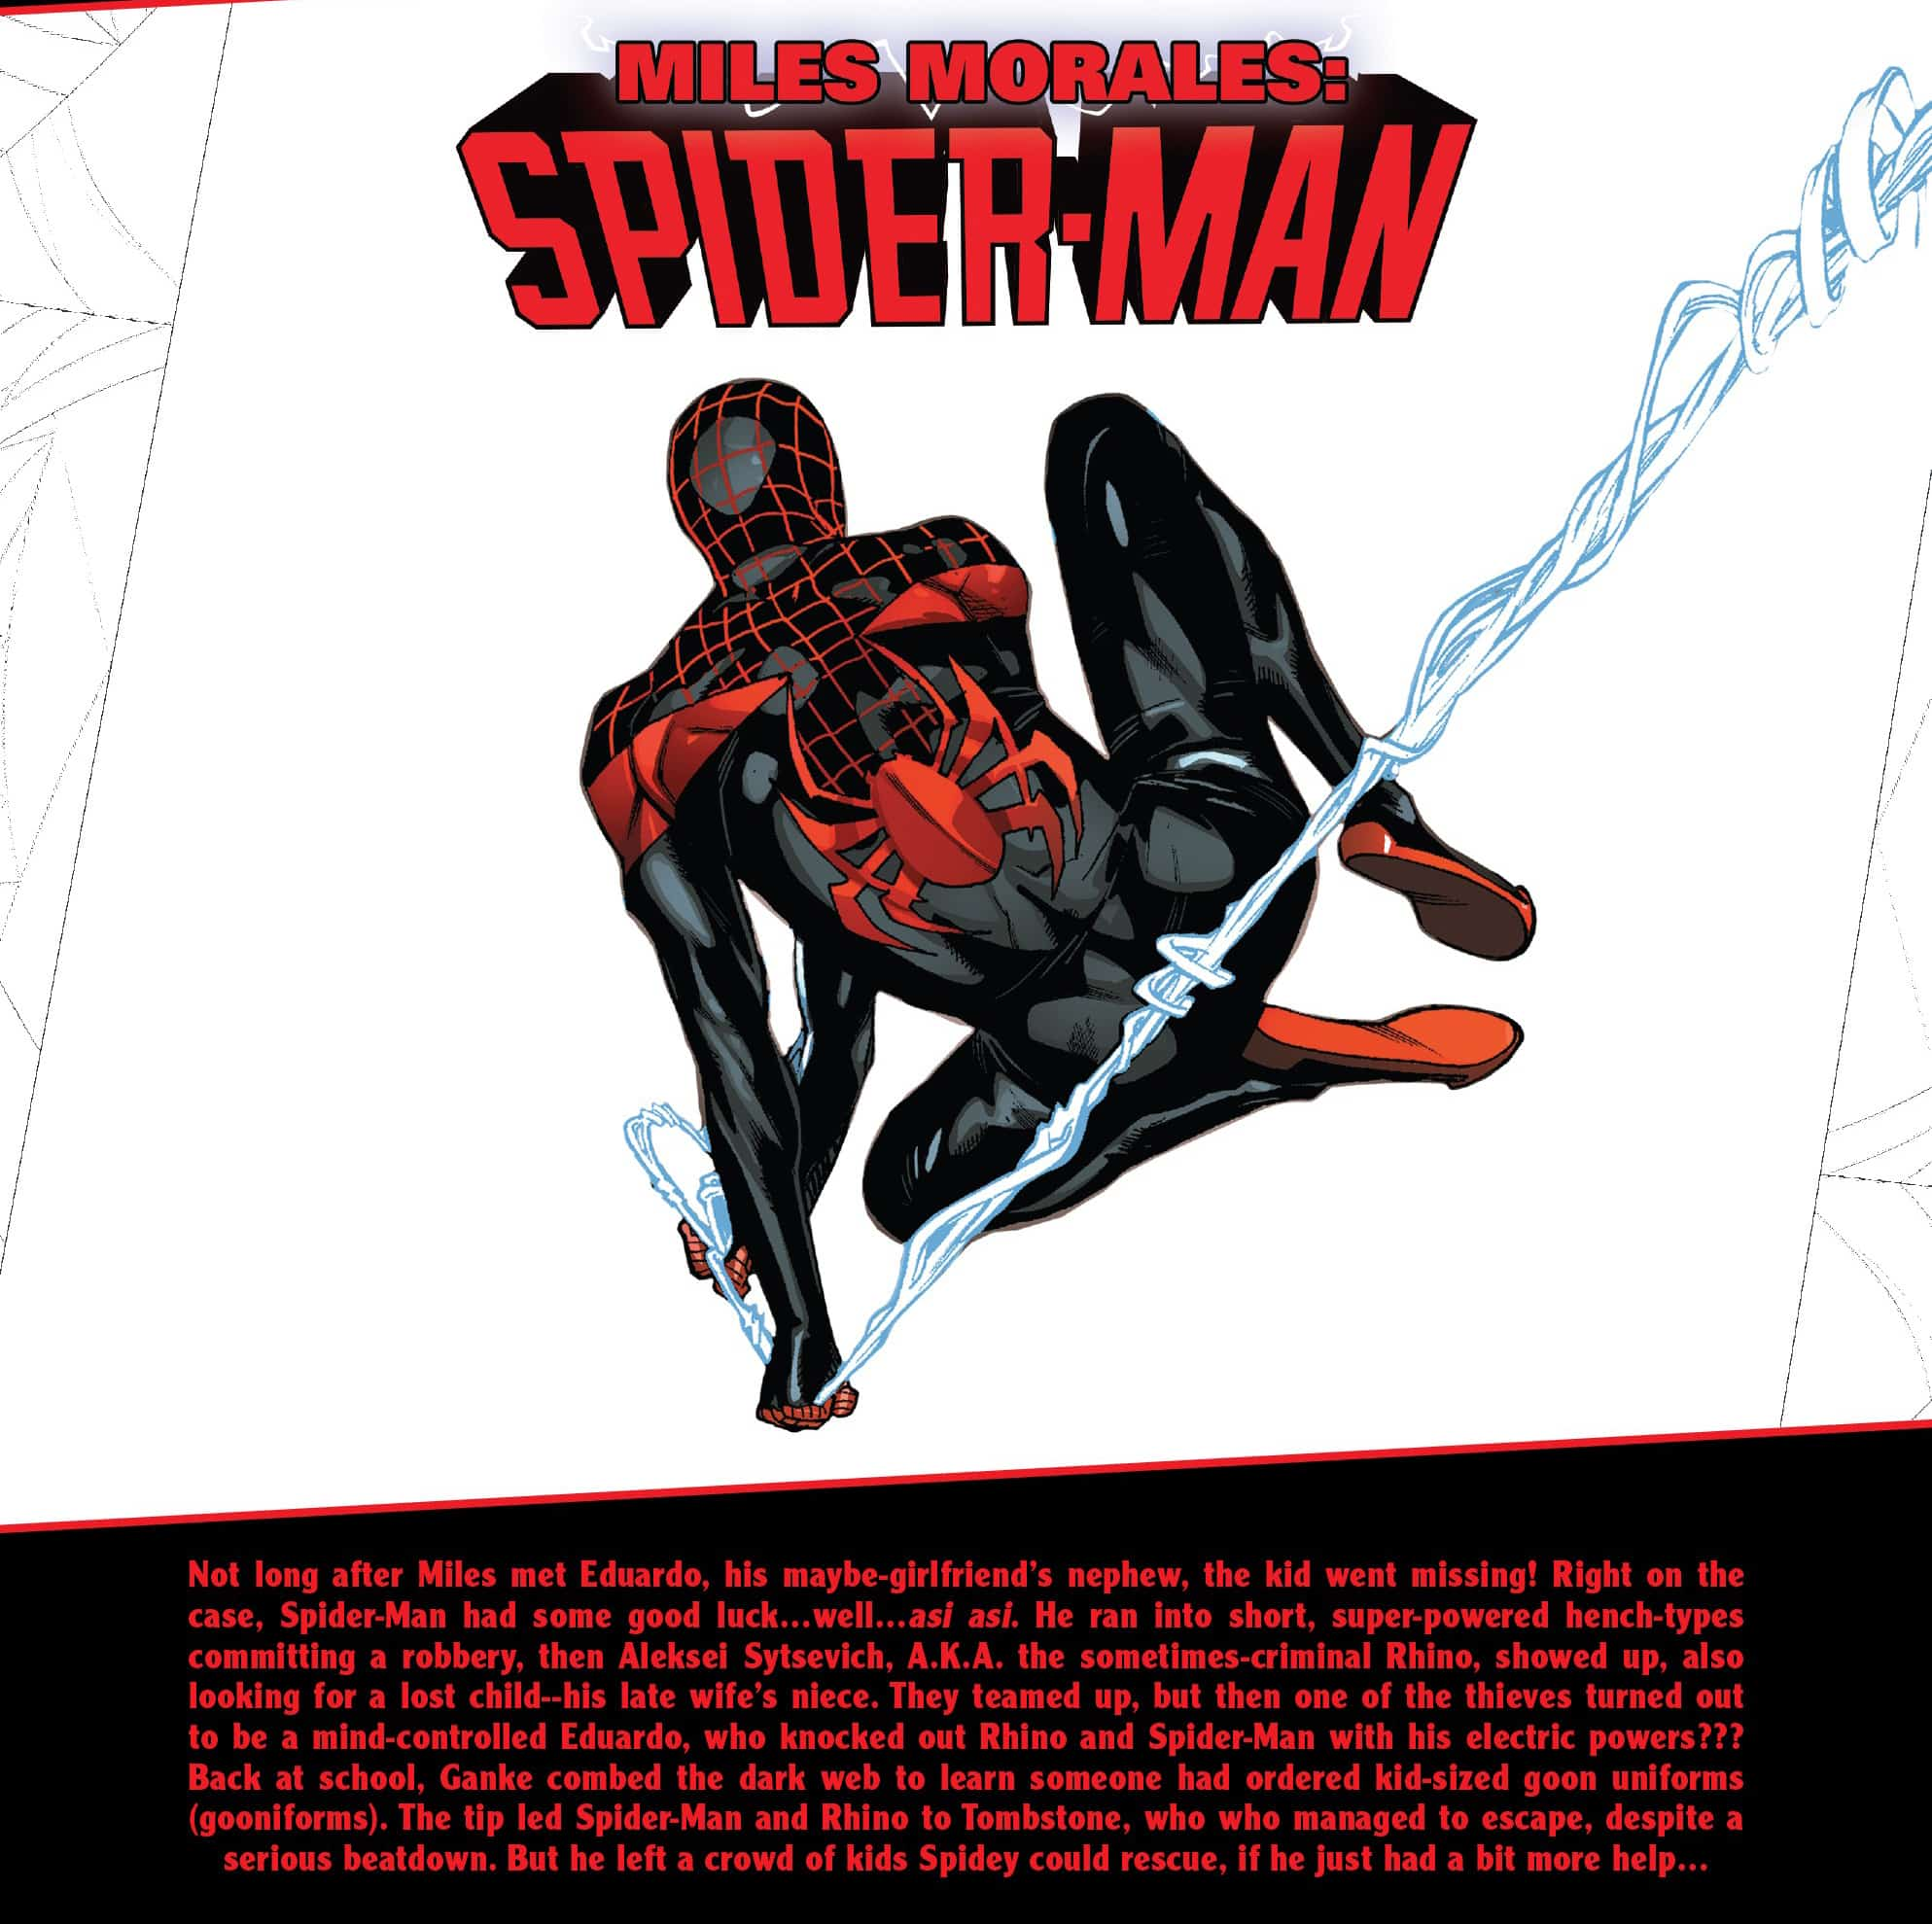 Miles Morales Spider-Man #3: When In Doubt, Use Rhino